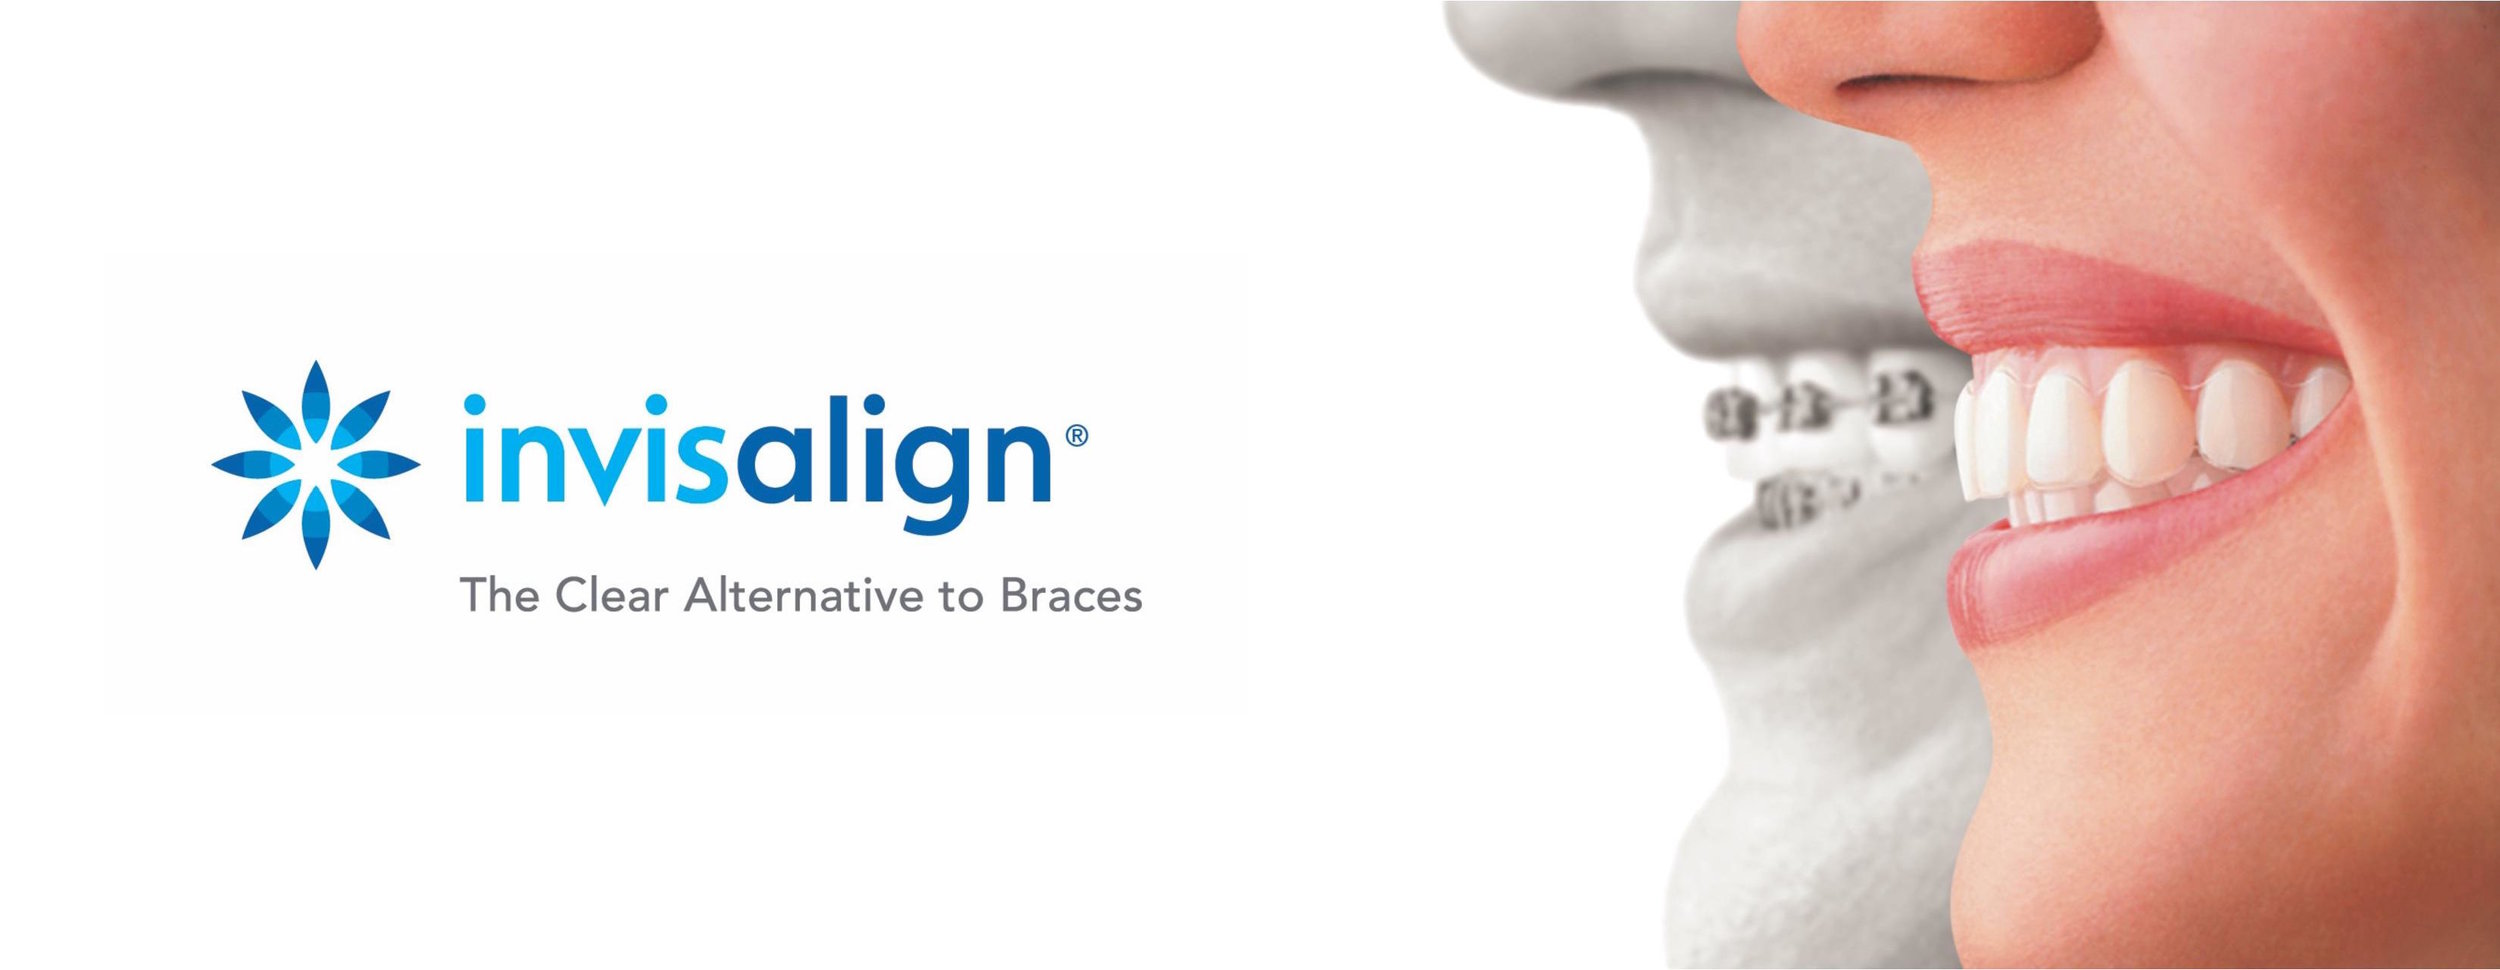 Invisalign™ uses a series of invisible, comfortable, and removable aligners that remain invisible